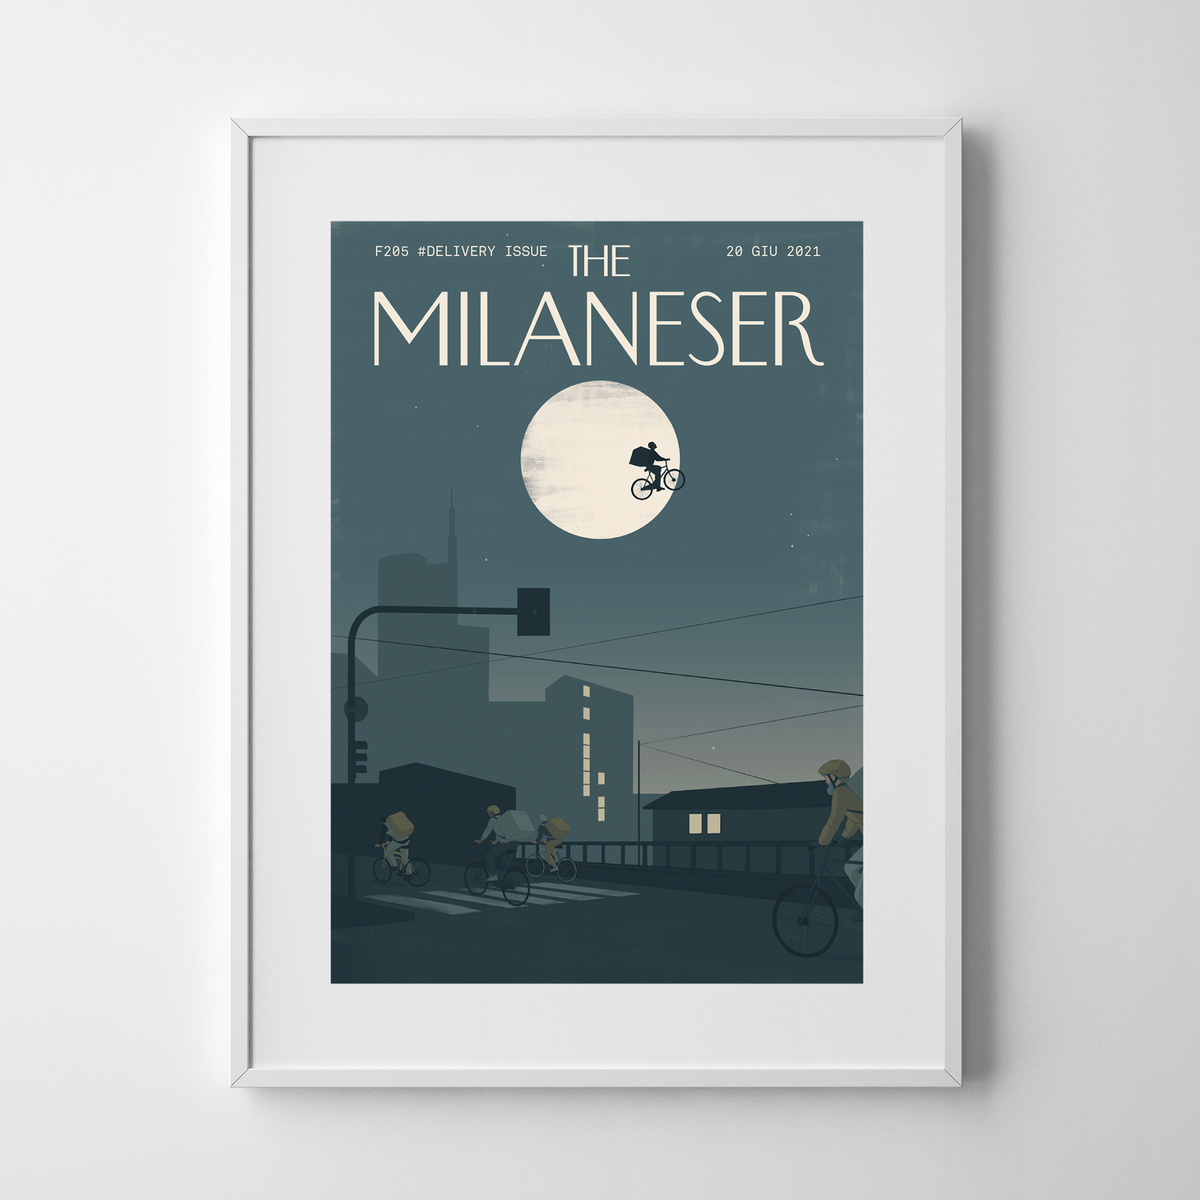 Image of The Milaneser #DELIVERY ISSUE